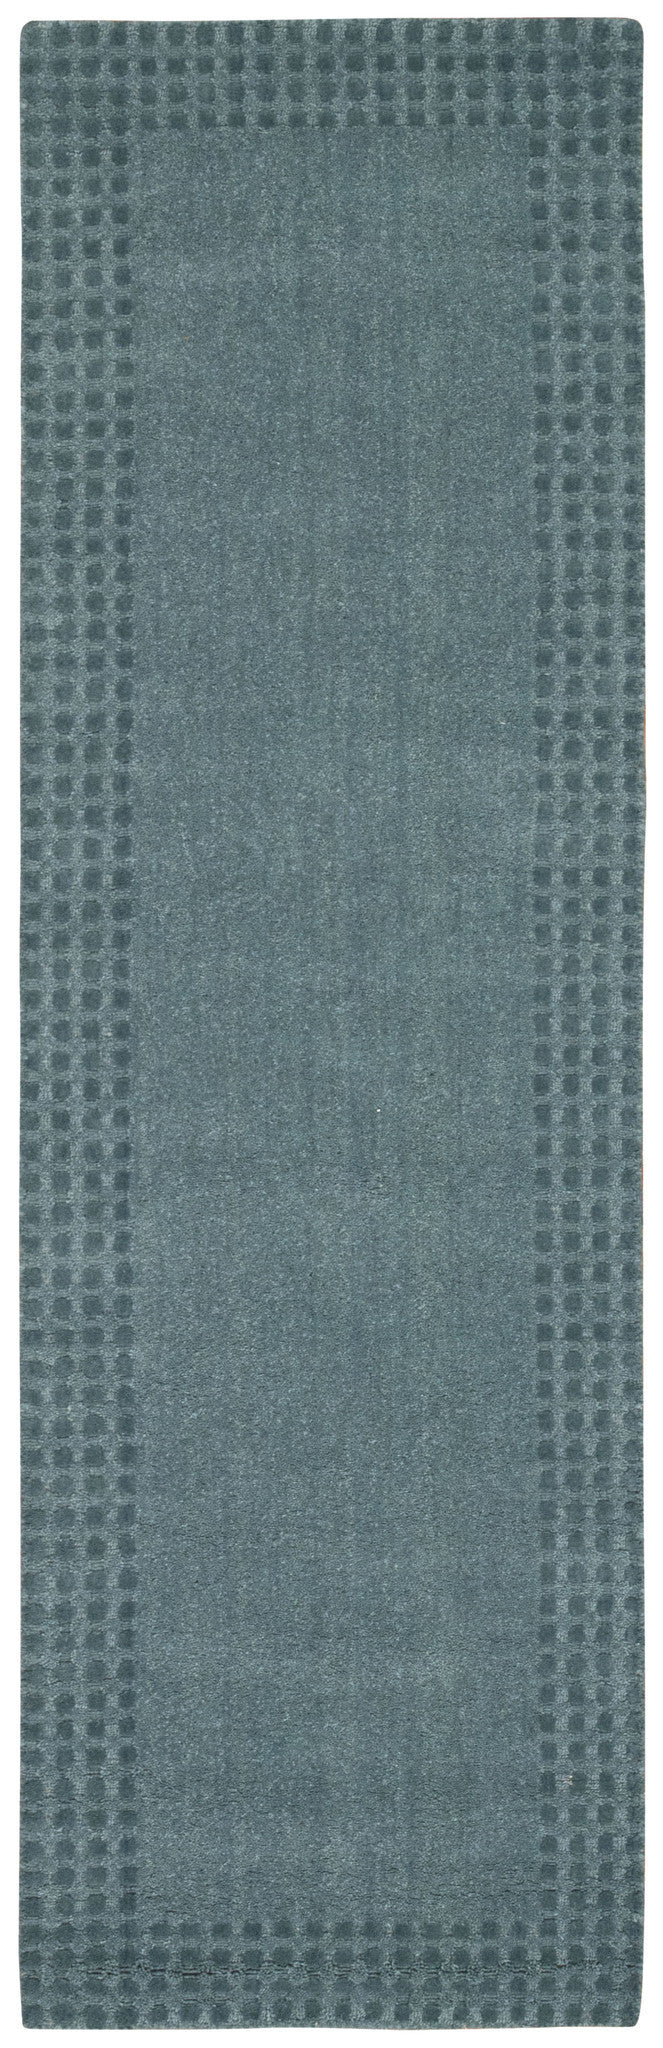 Kathy Ireland Cottage Grove Ocean Area Rug By Nourison KI700 OCEAN